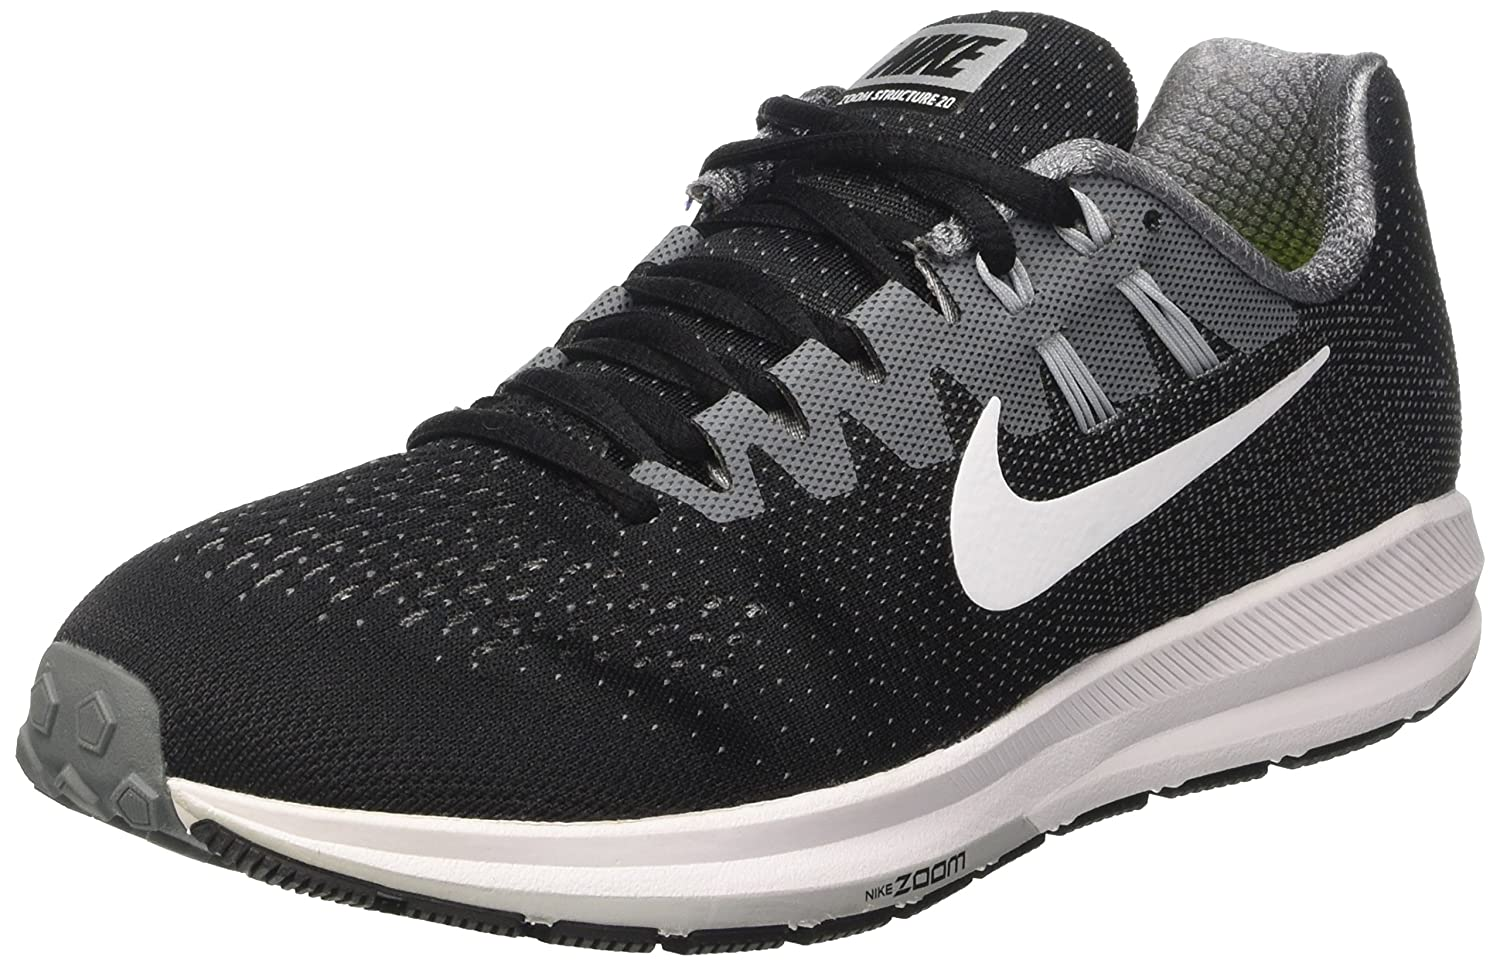 NIKE Men's Air Zoom Structure Running Shoes B01LRPZP56 15 D(M) US|Black/Cool Grey/Pure Platinum/White